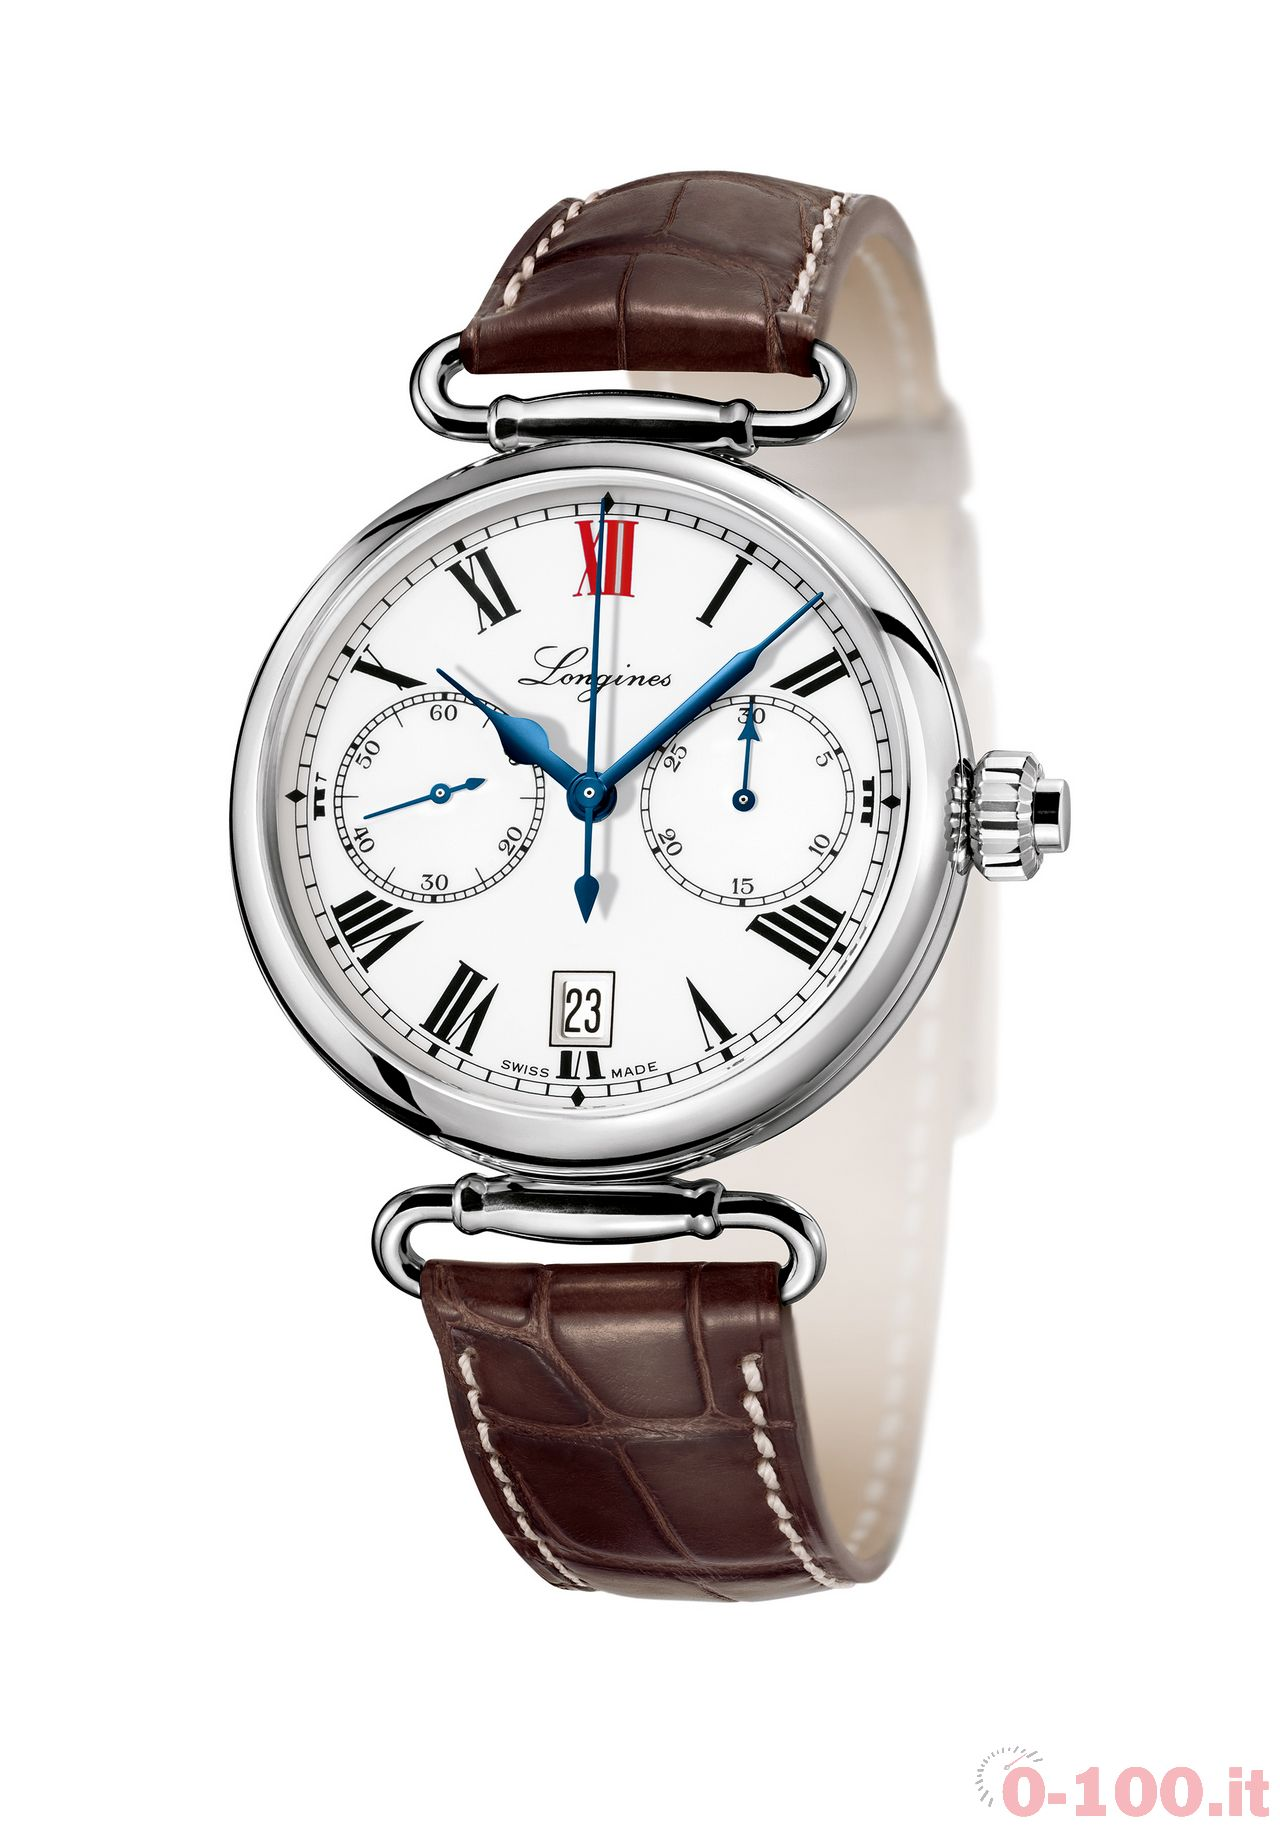 Longines Column-Wheel-Single-Push-Piece-Chronograph-0-100_18